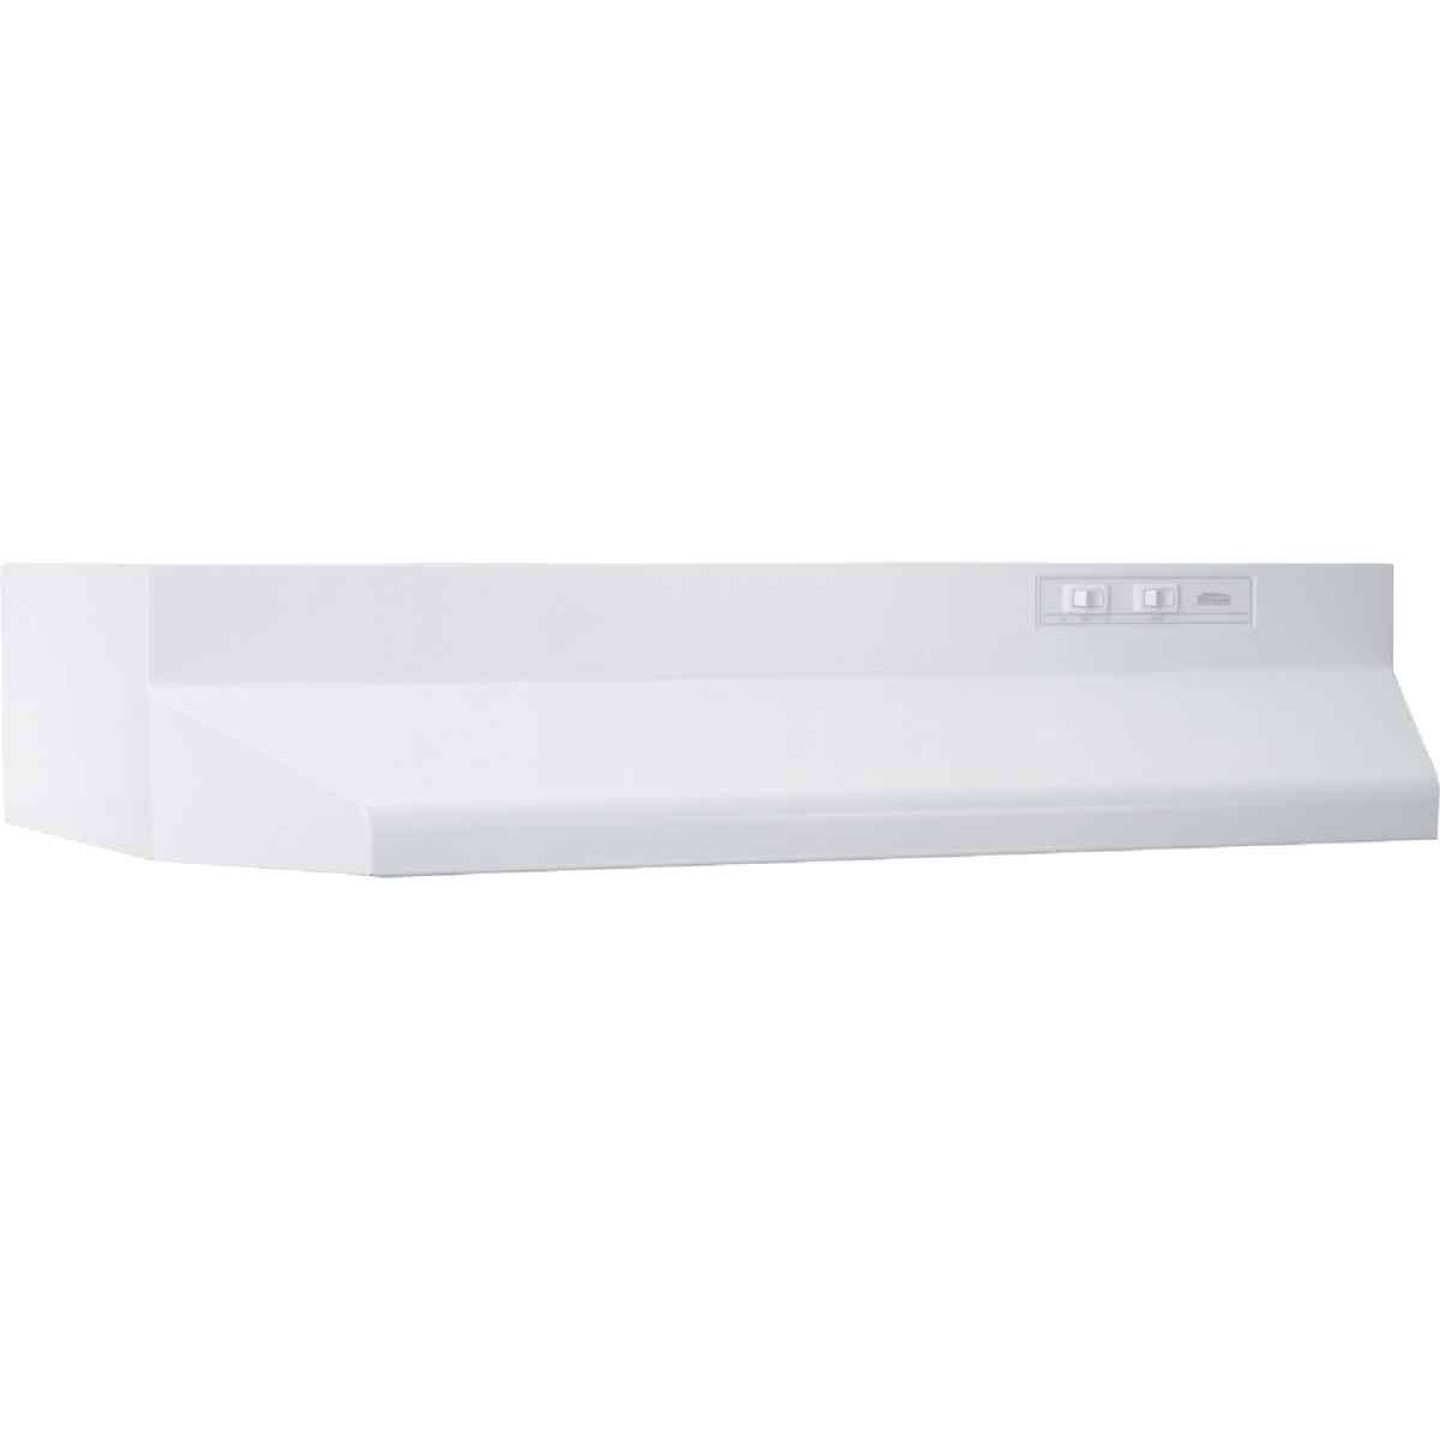 Broan-Nutone 40000 Series 30 In. Ducted White Range Hood Image 1